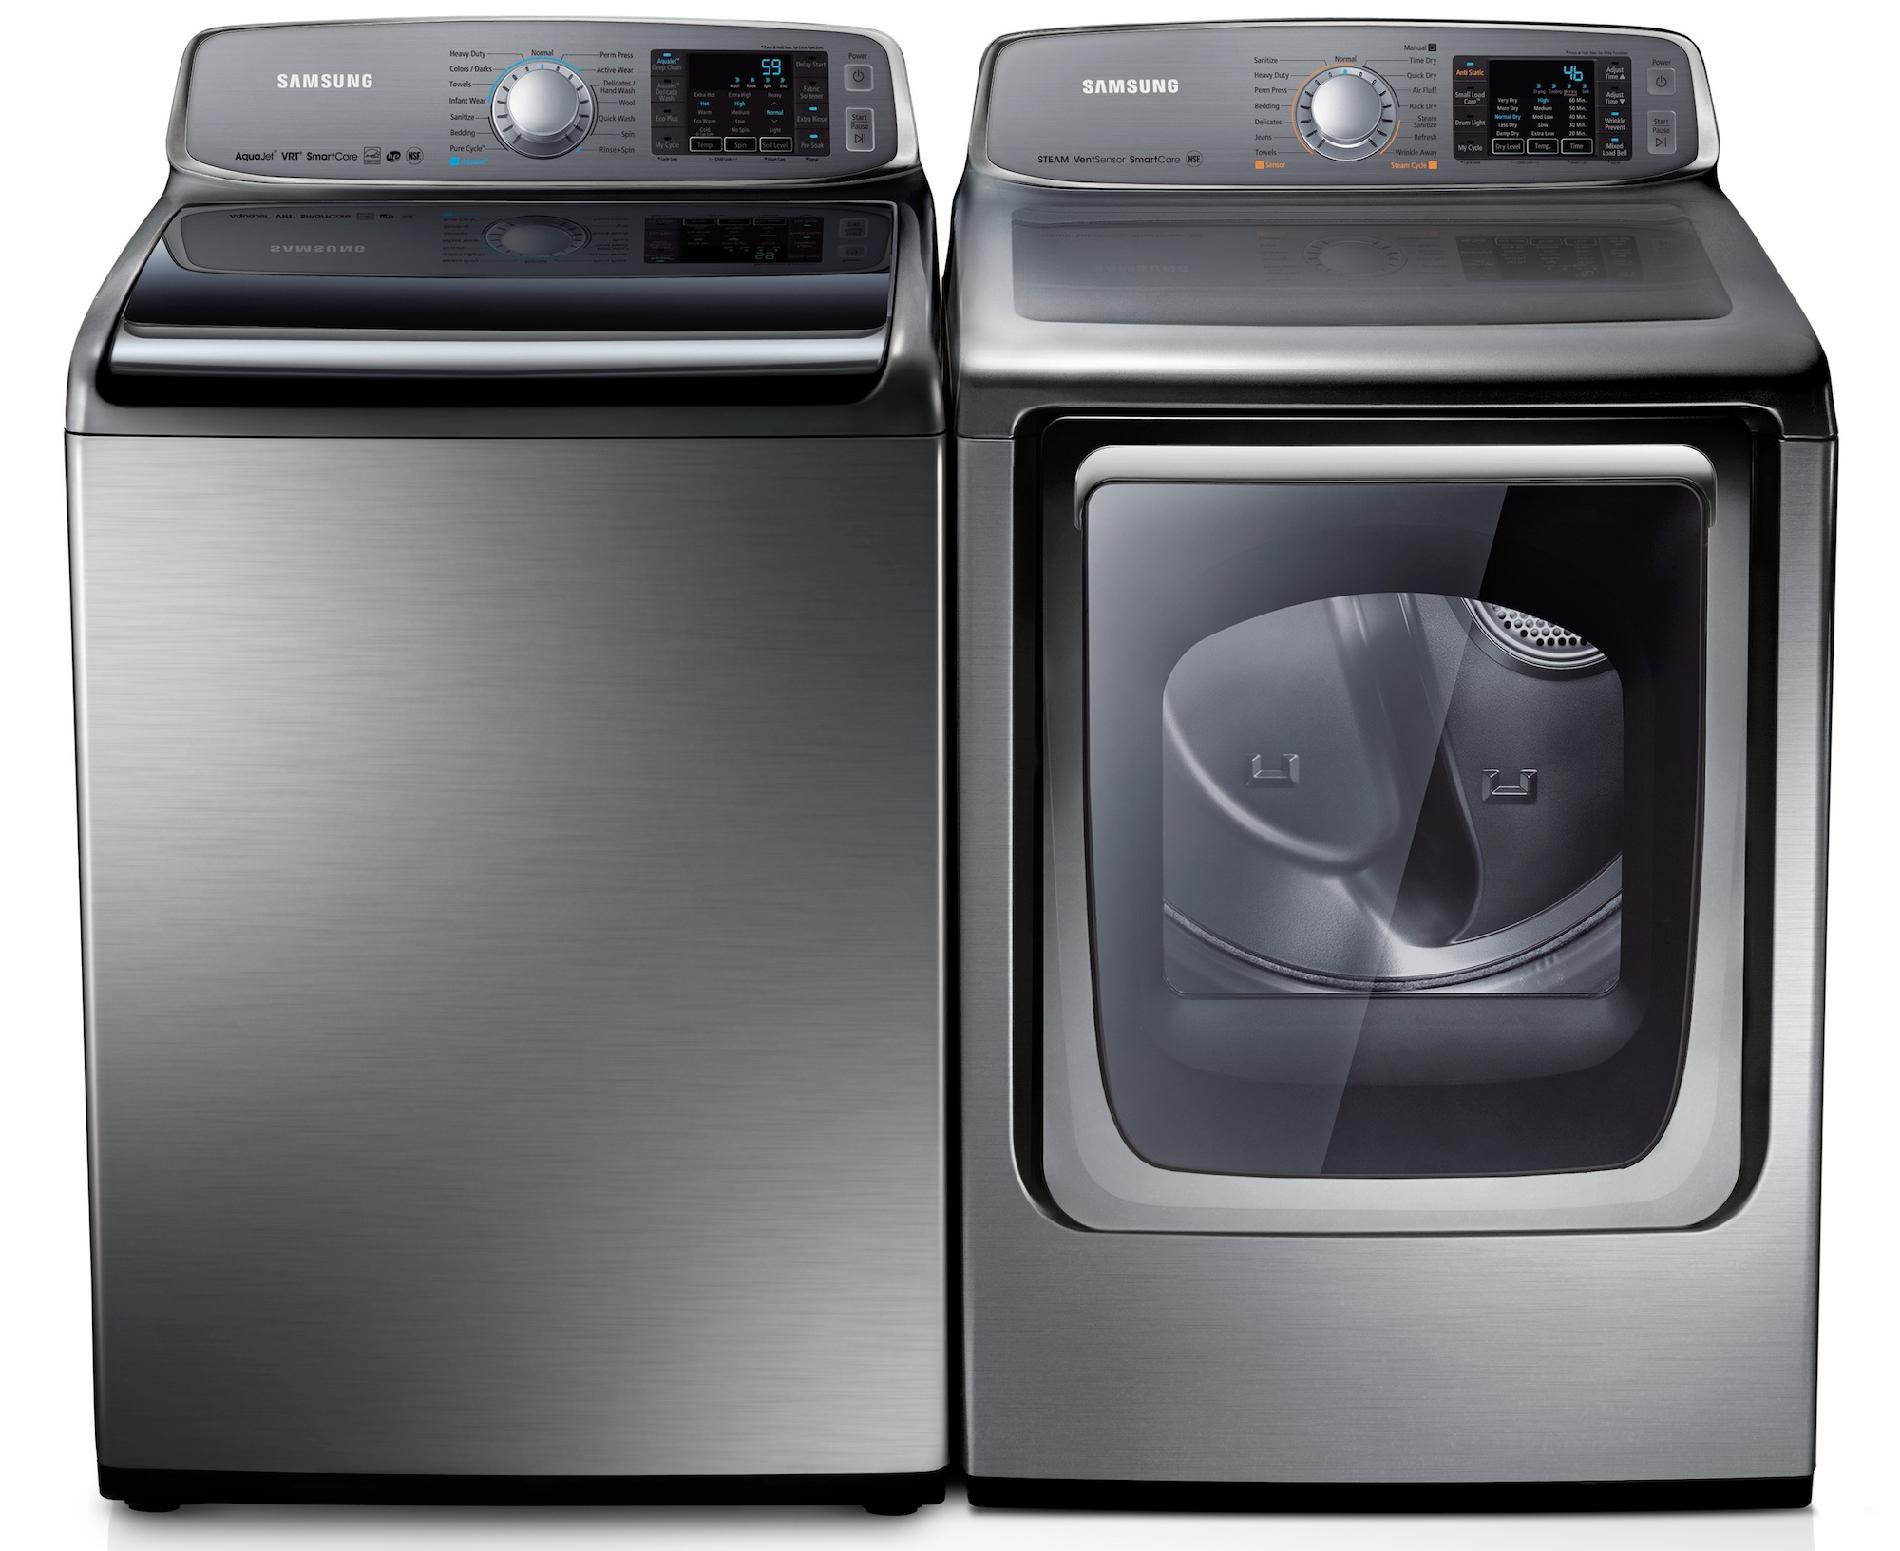 Samsung 5.0 cu. ft. Top-Load Washer w/ Internal Heater - Stainless Platinum